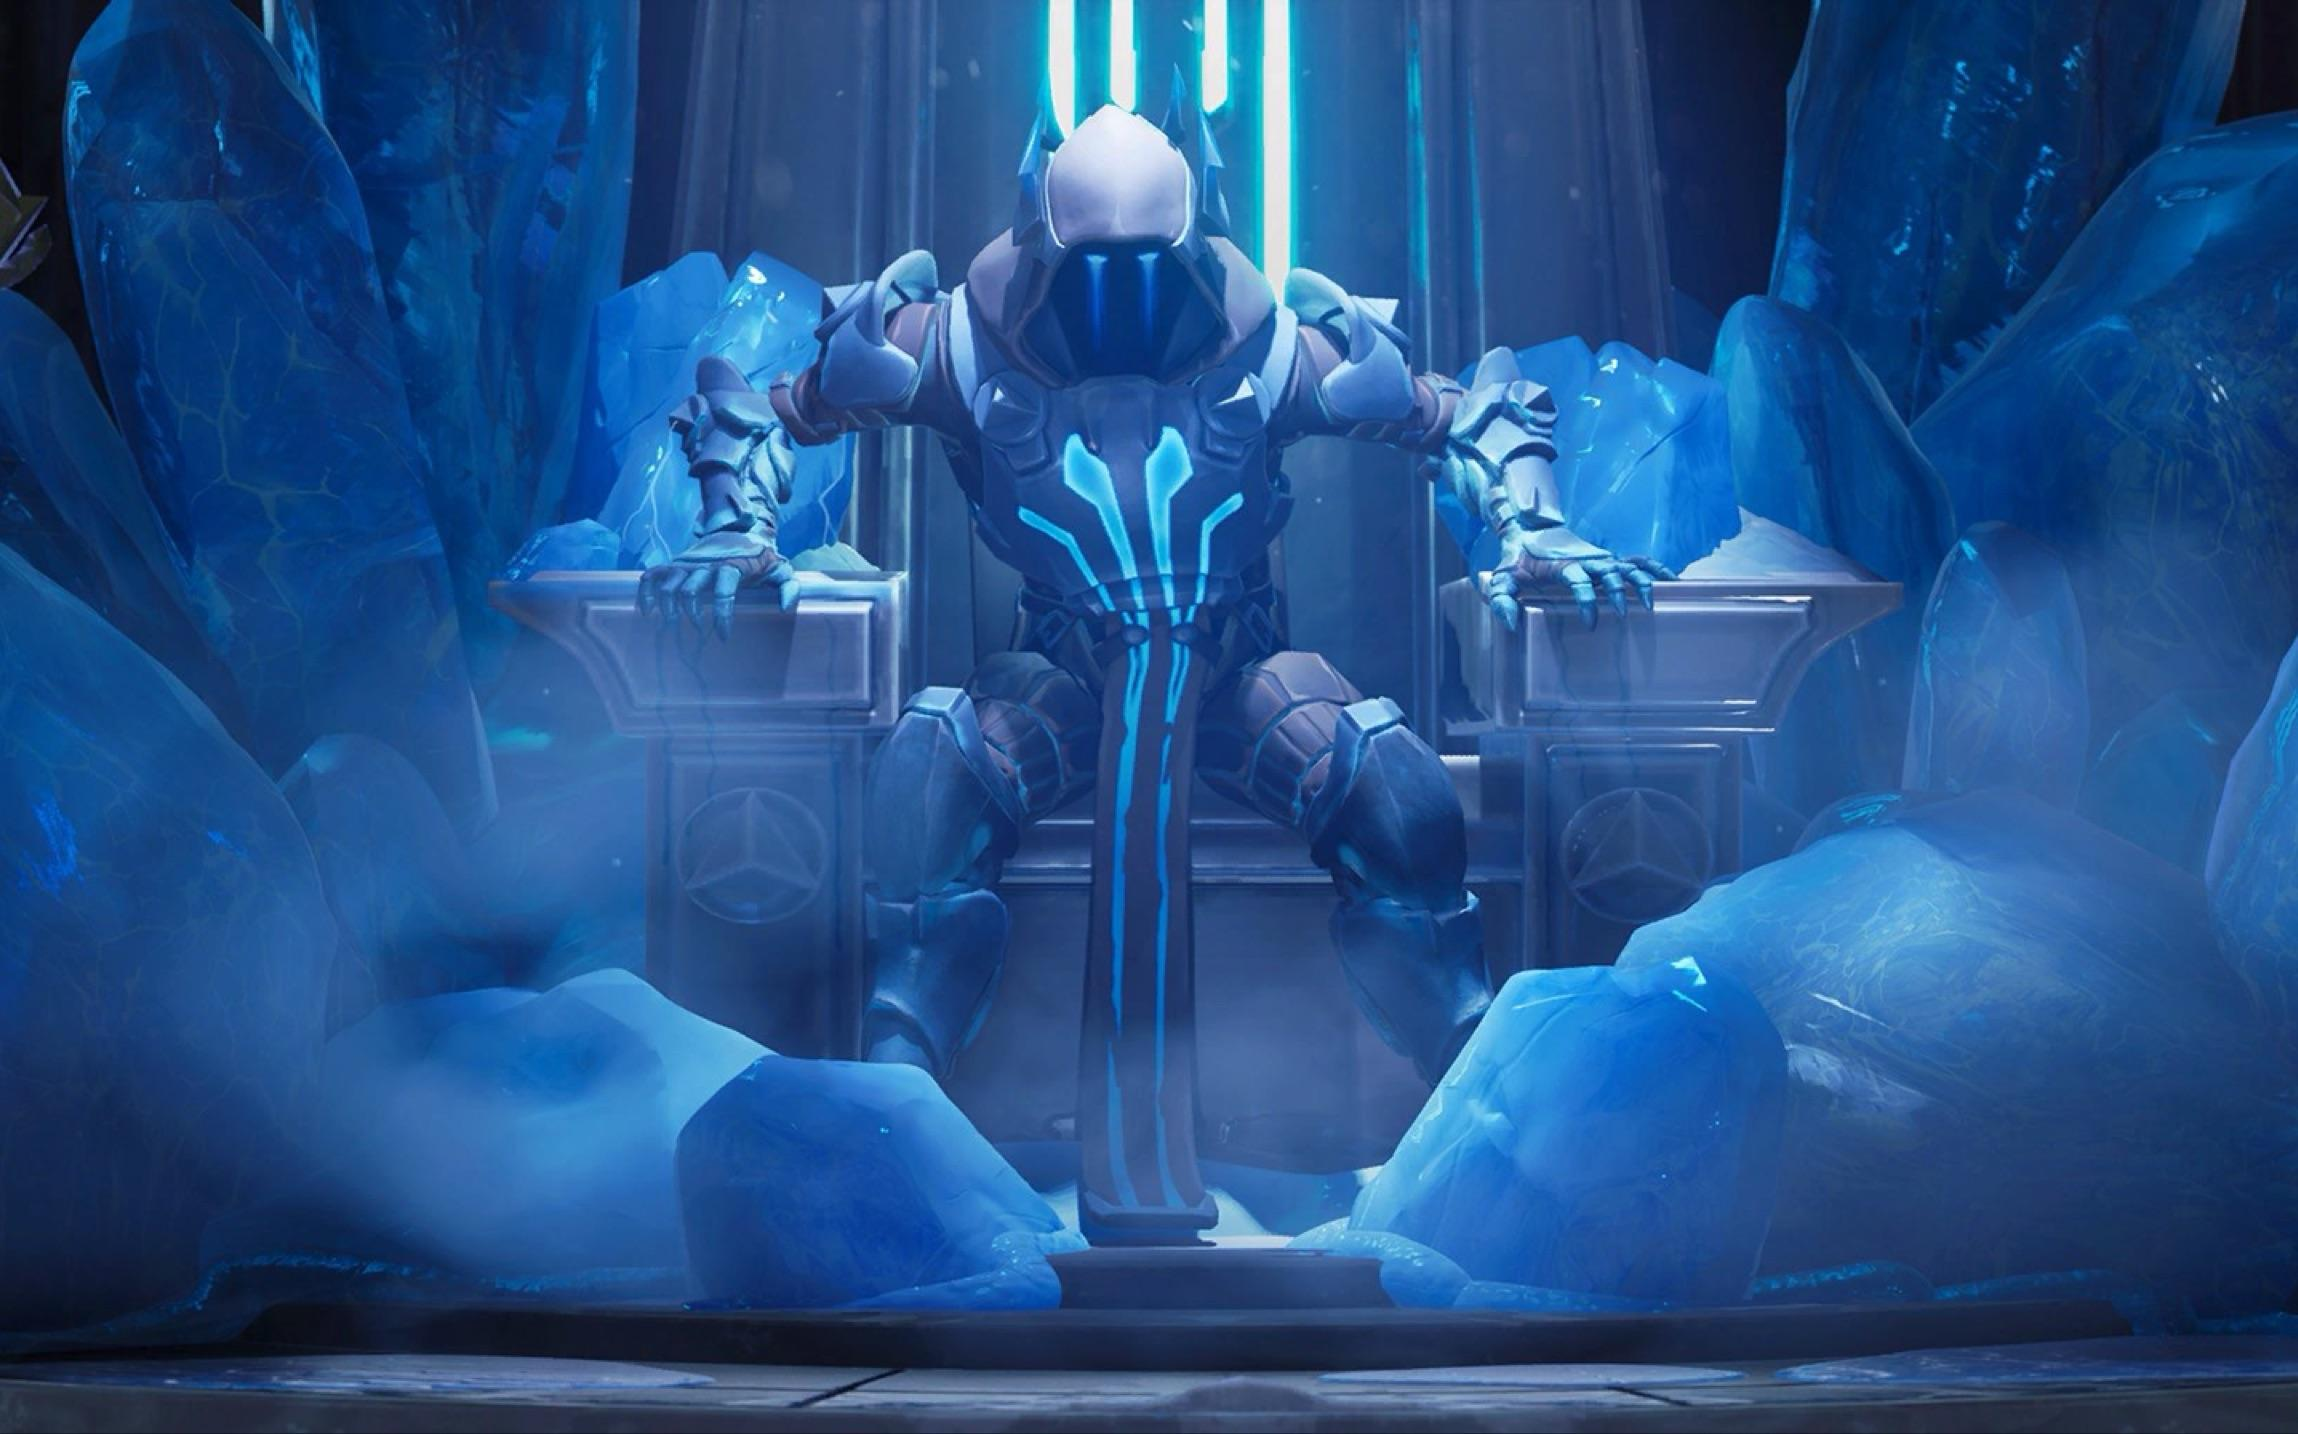 Cool Ice King HD Backgrounds Fortnite Season 7 Wallpapers and